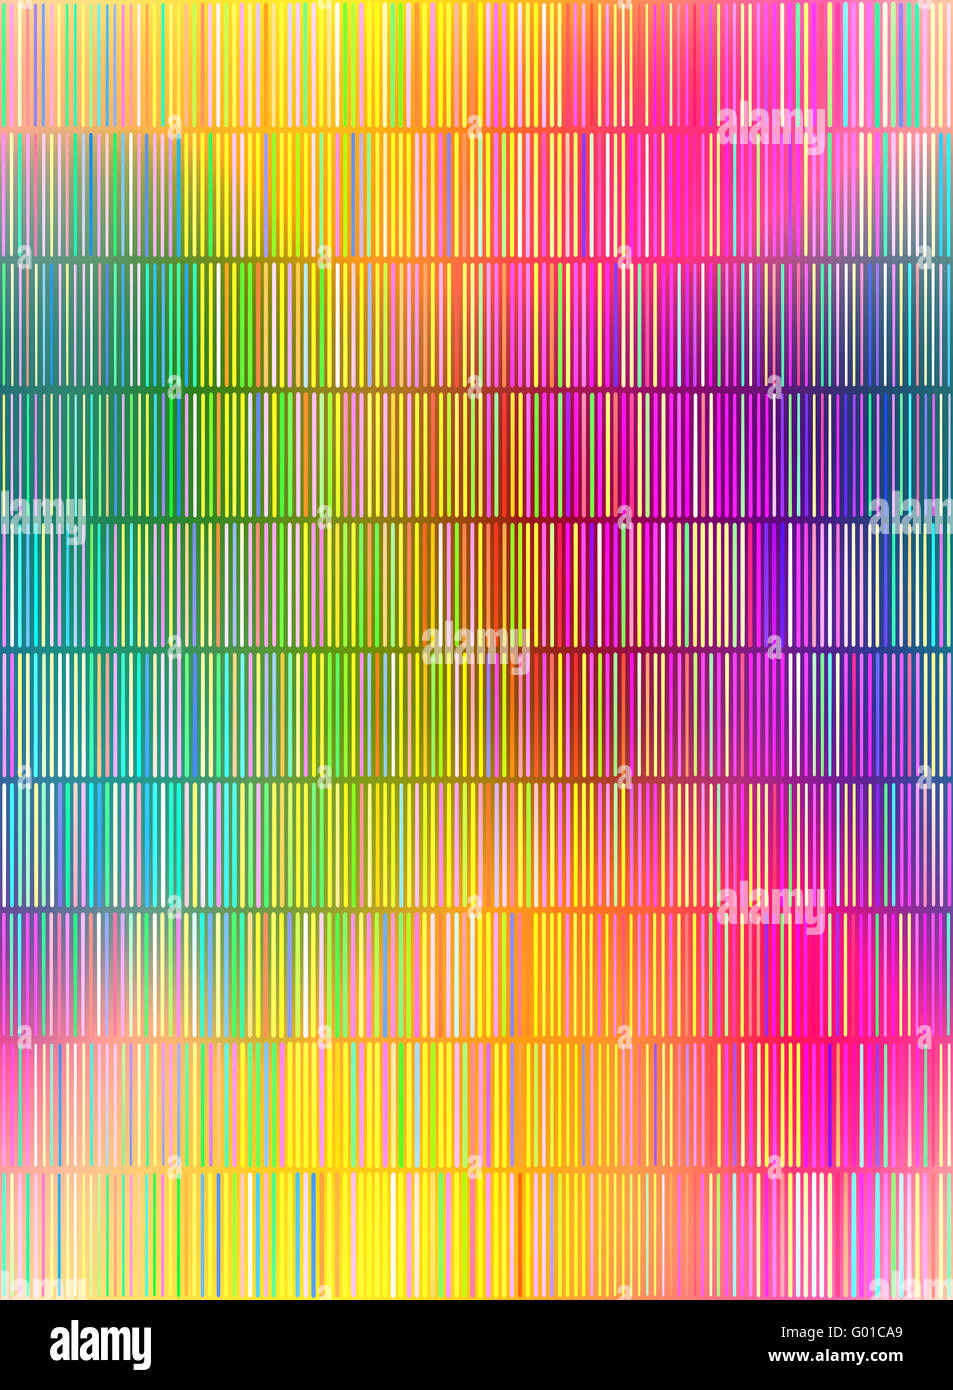 seamless texture of many small vertical vibrant lines - Stock Image